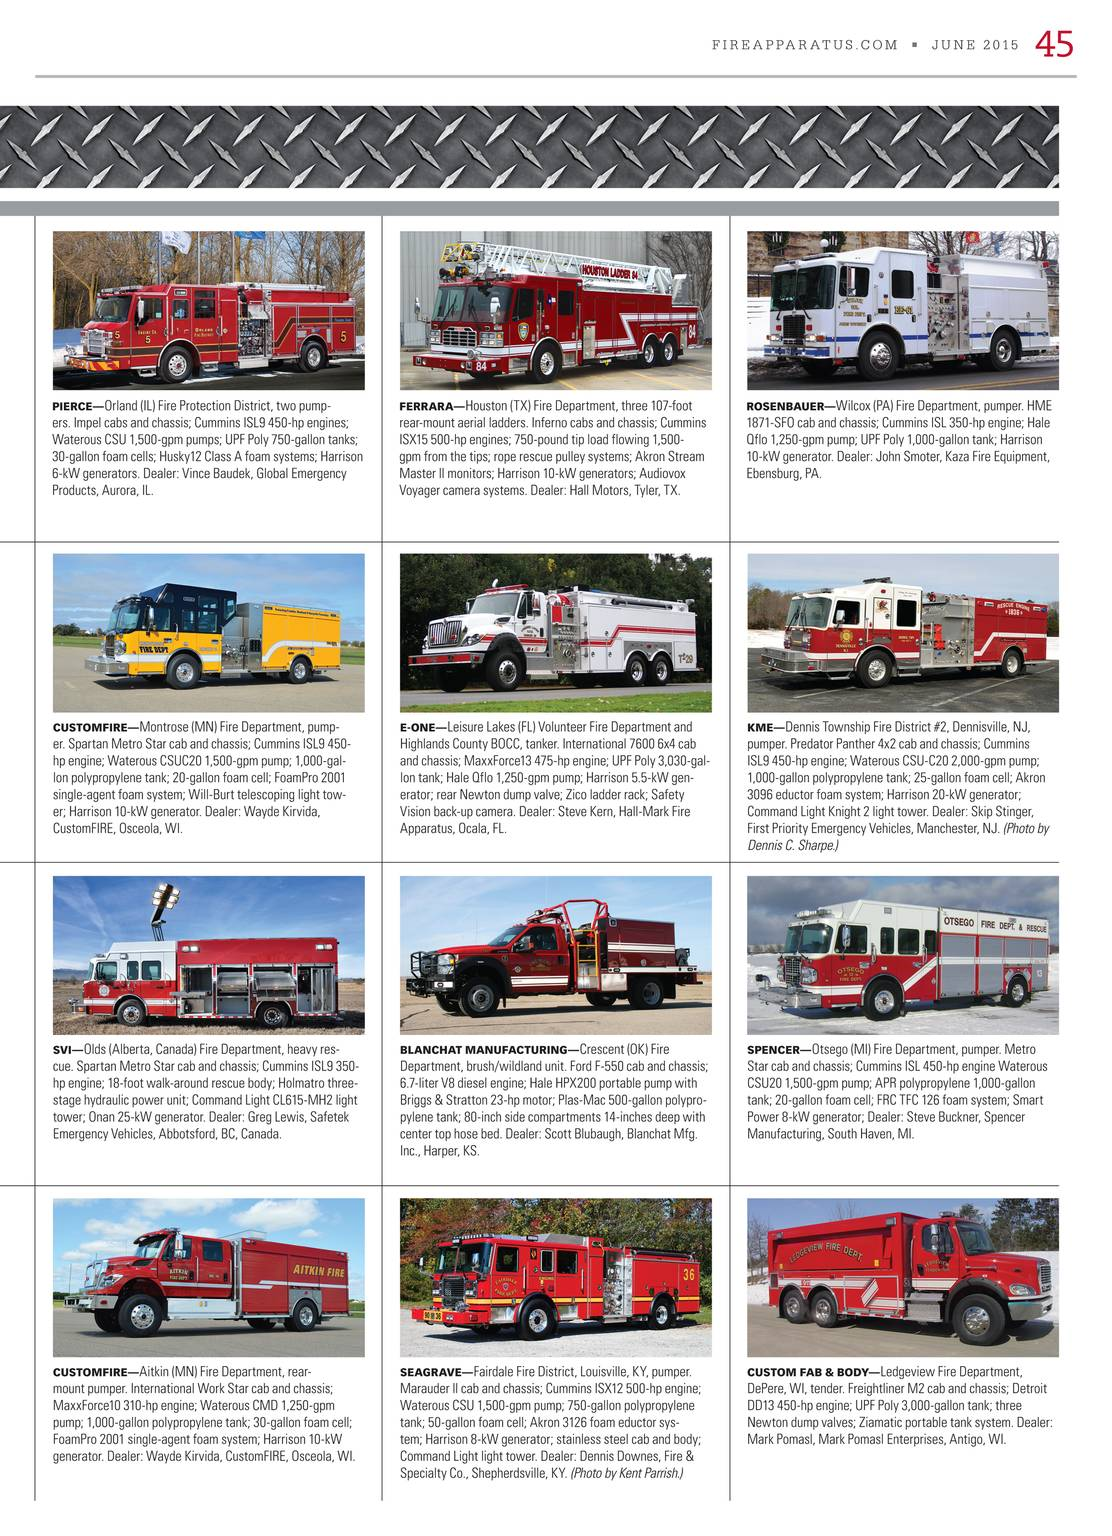 Fire Apparatus Magazine - June 2015 - page 44